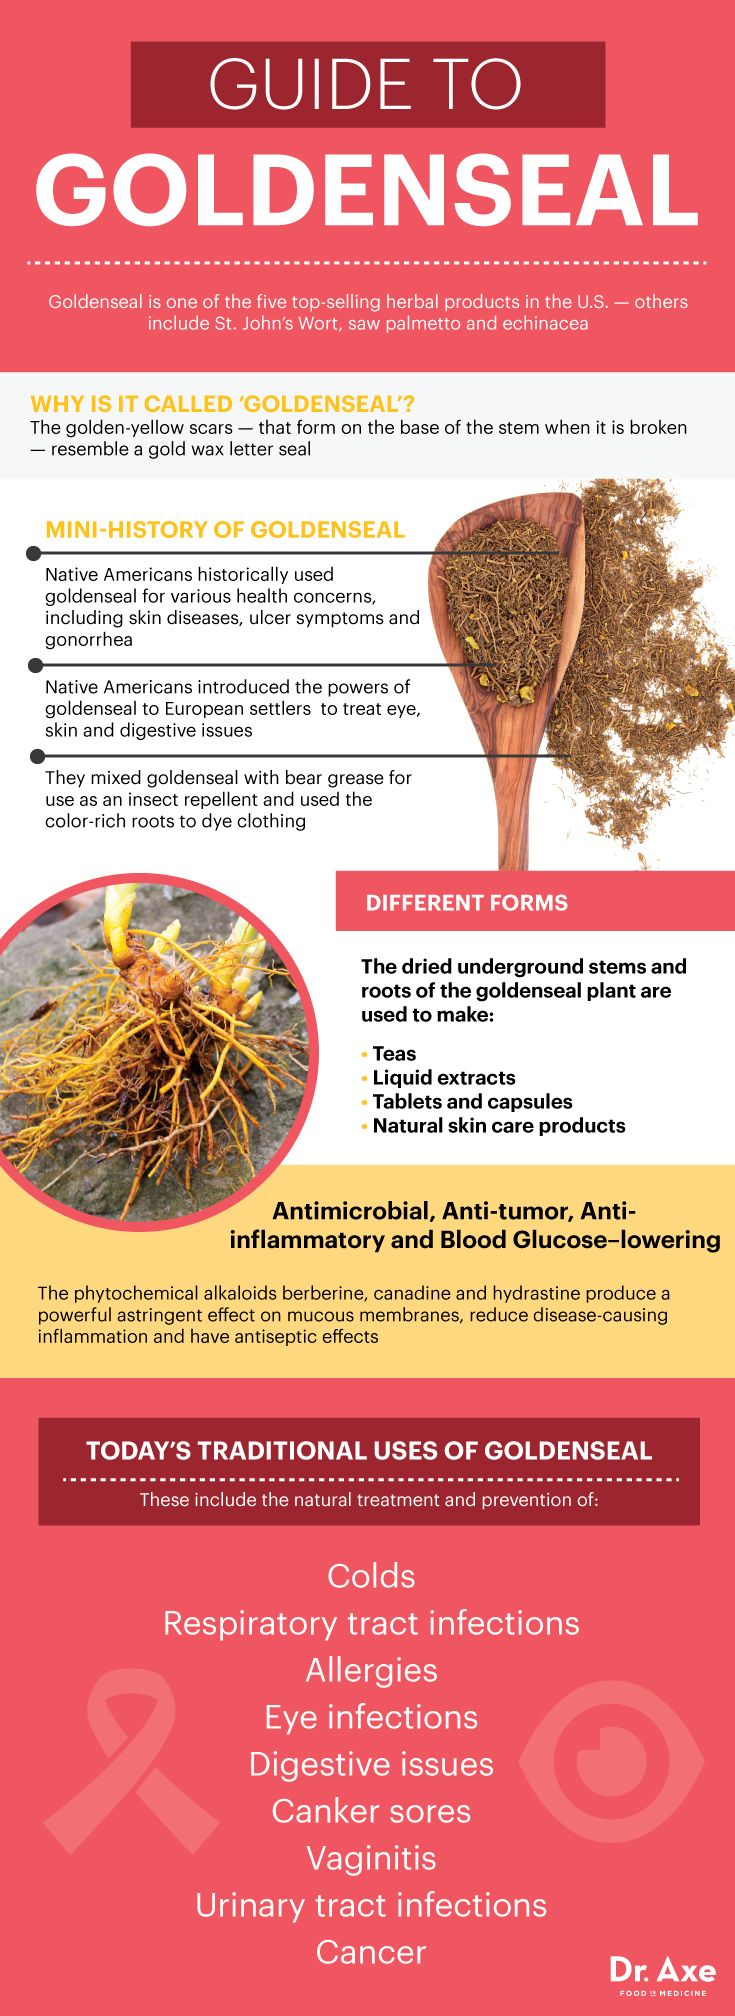 Guide To Goldenseal: A Natural Antibiotic and Cancer Fighter